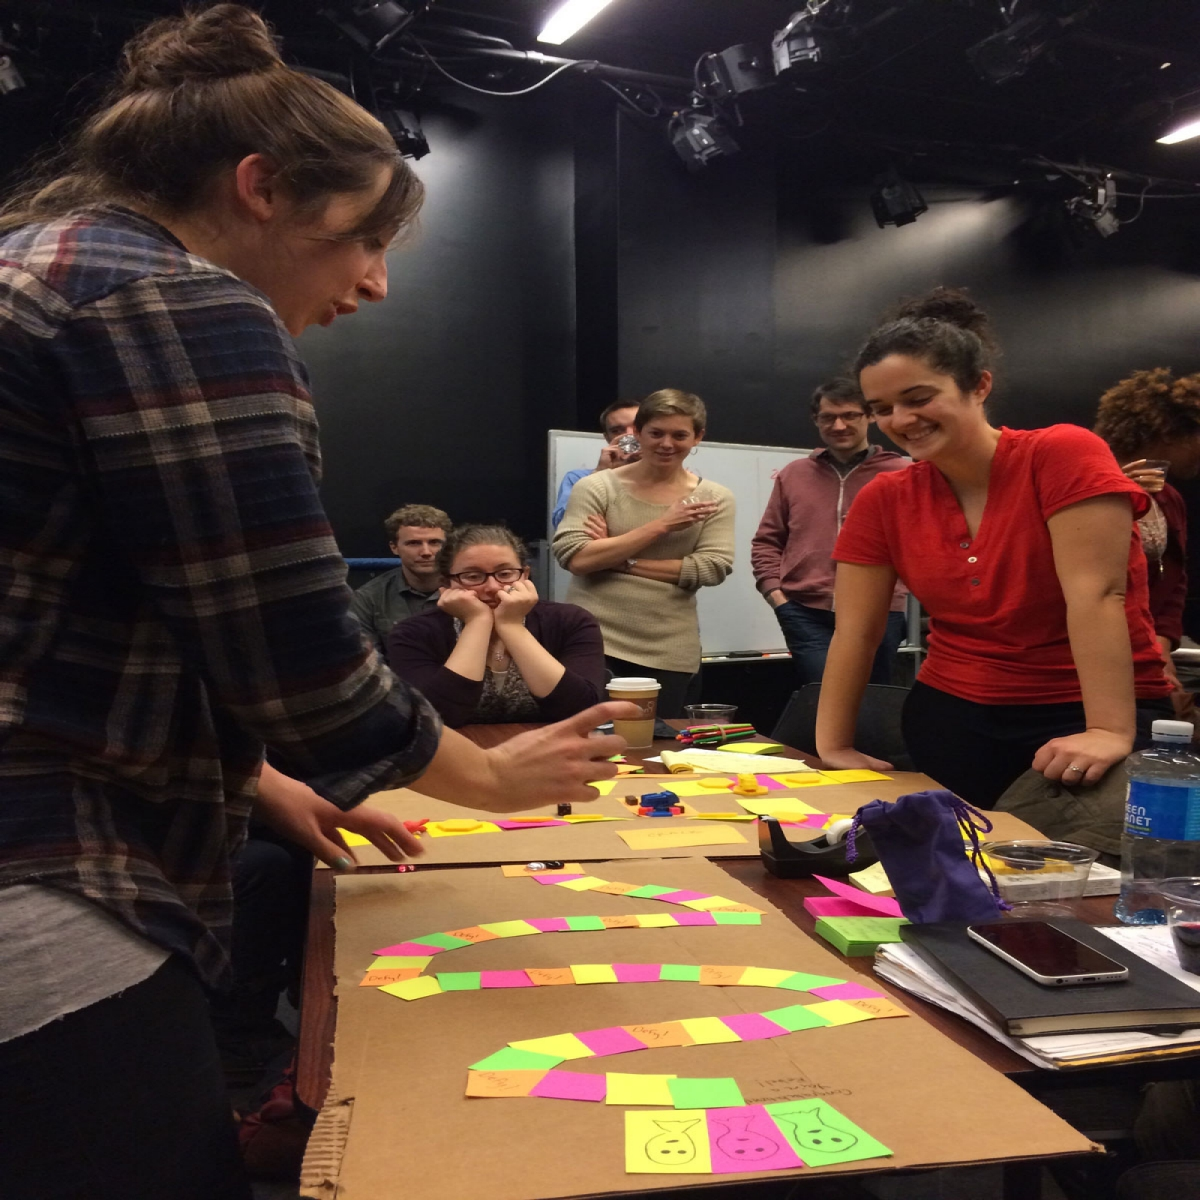 World Building in Games at Graduate Musical Theatre Writing